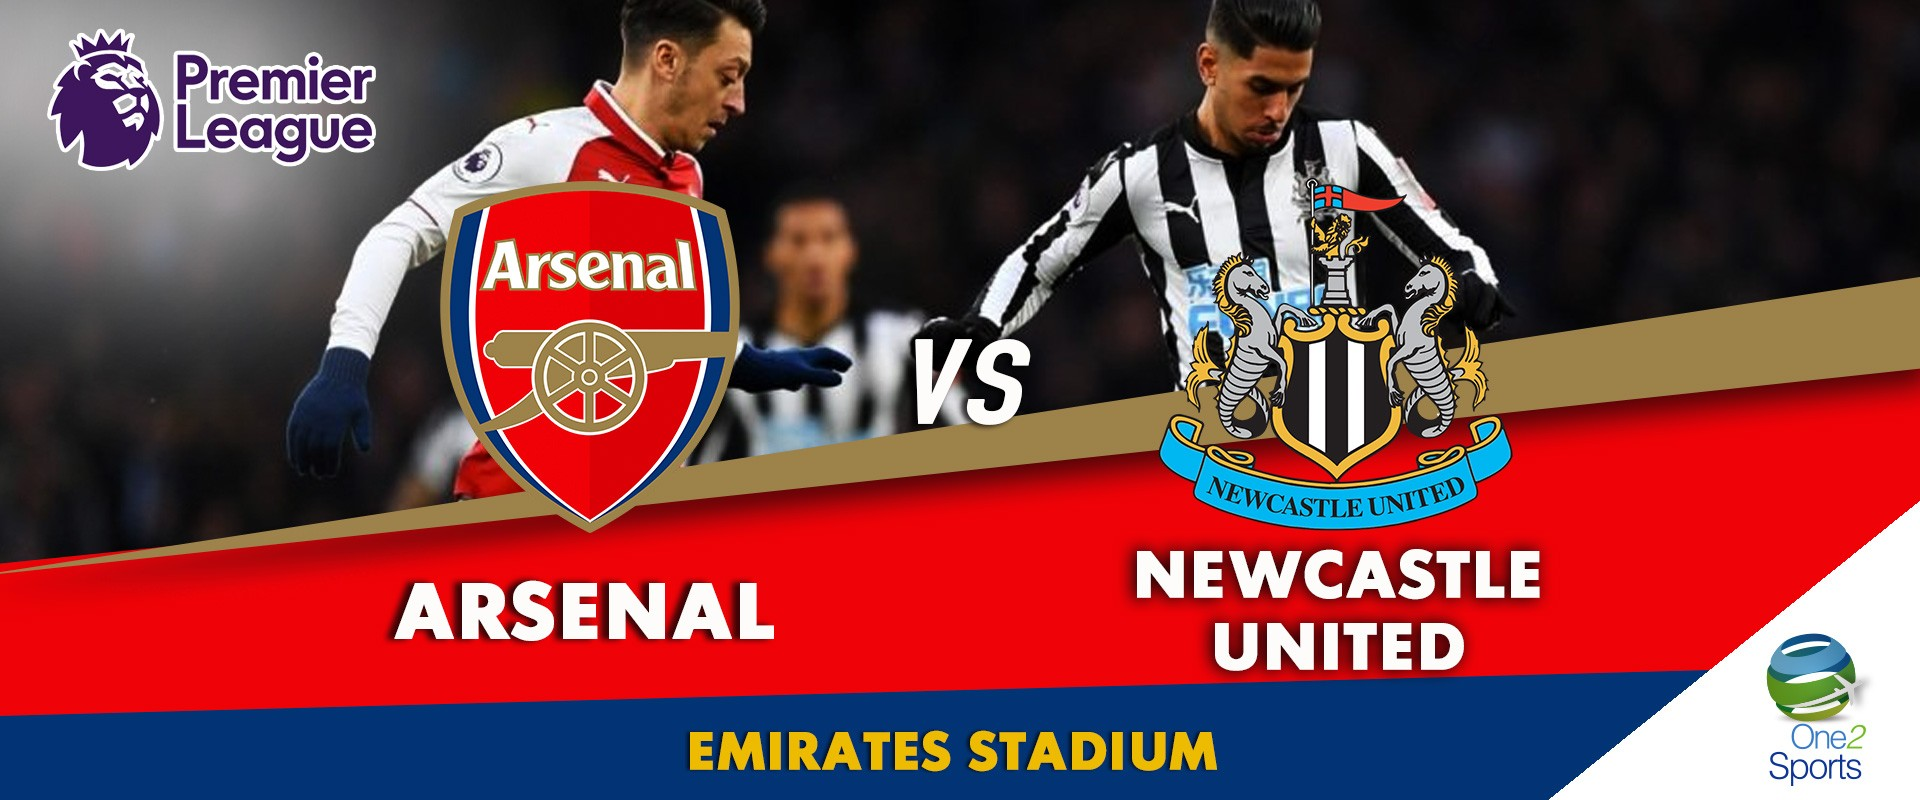 Arsenal vs Newcastel United